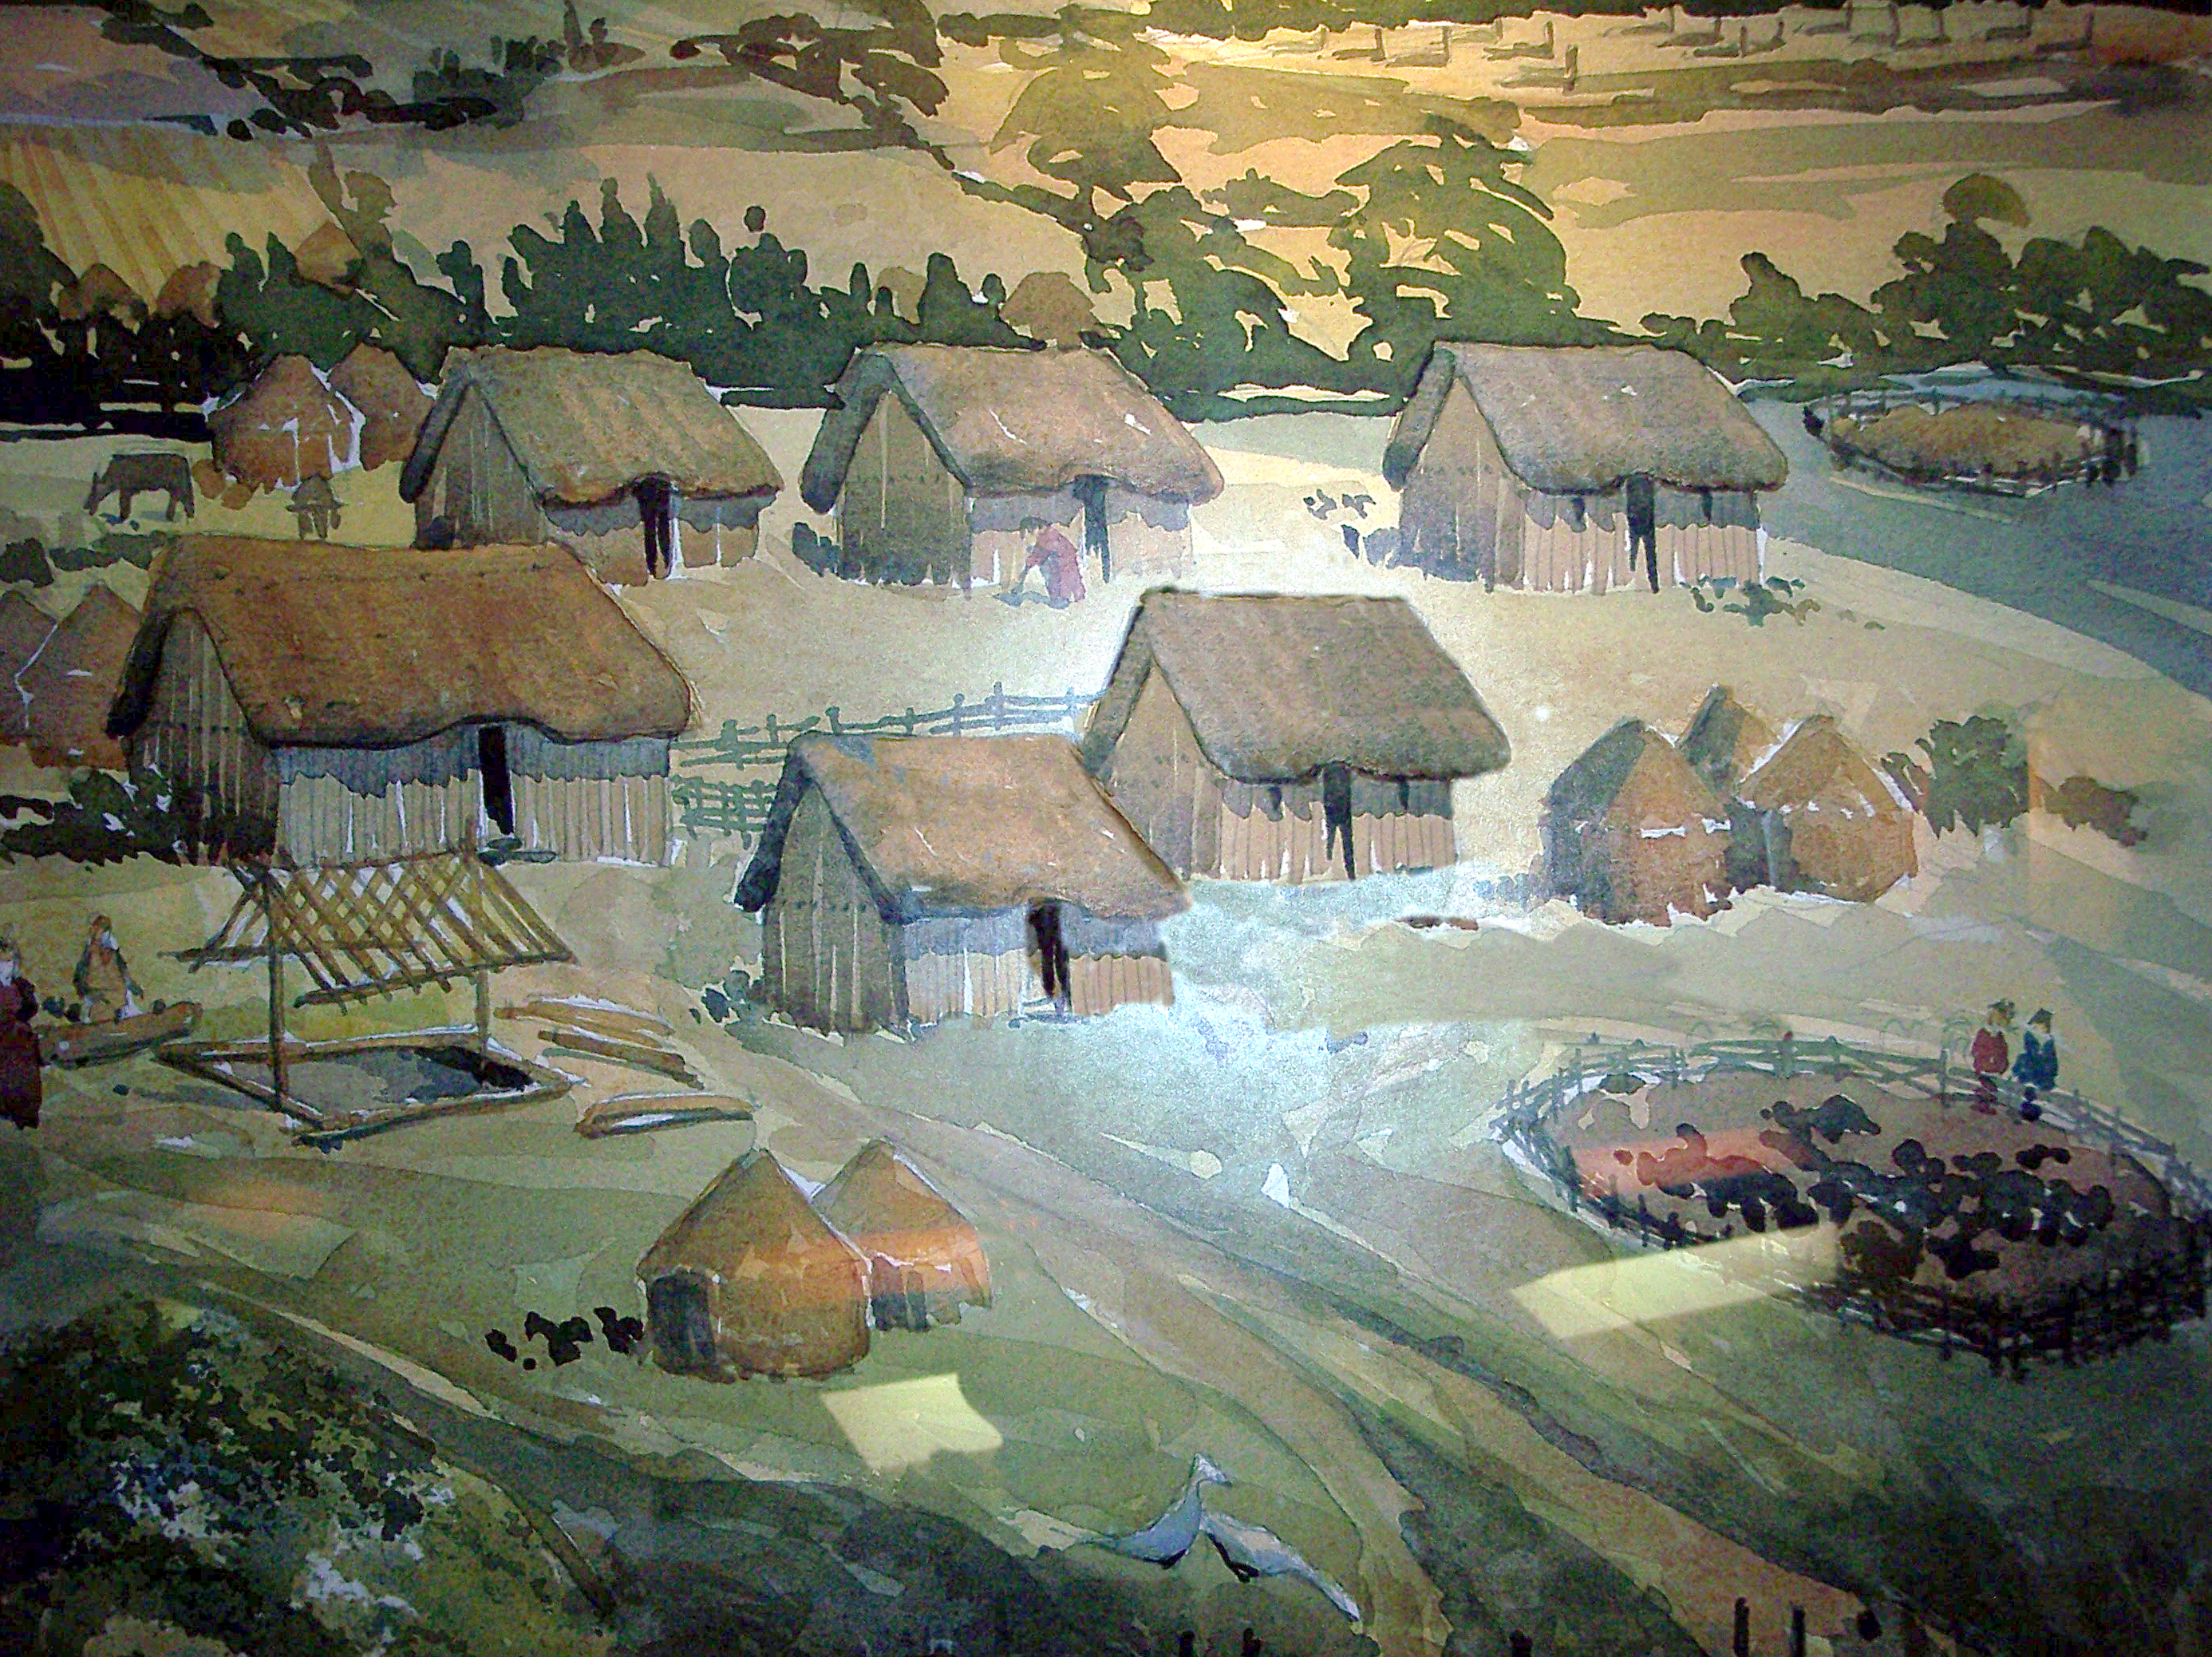 Artists impression of an early Anglo-Saxon village. Anglo-Saxon family groups consisted largely of farmer-warriors. They had little interest in the Roman towns and clustered on newly conquered farmland. Their lives centred on the village and farm. In the hall of the leader they told tales of old war...